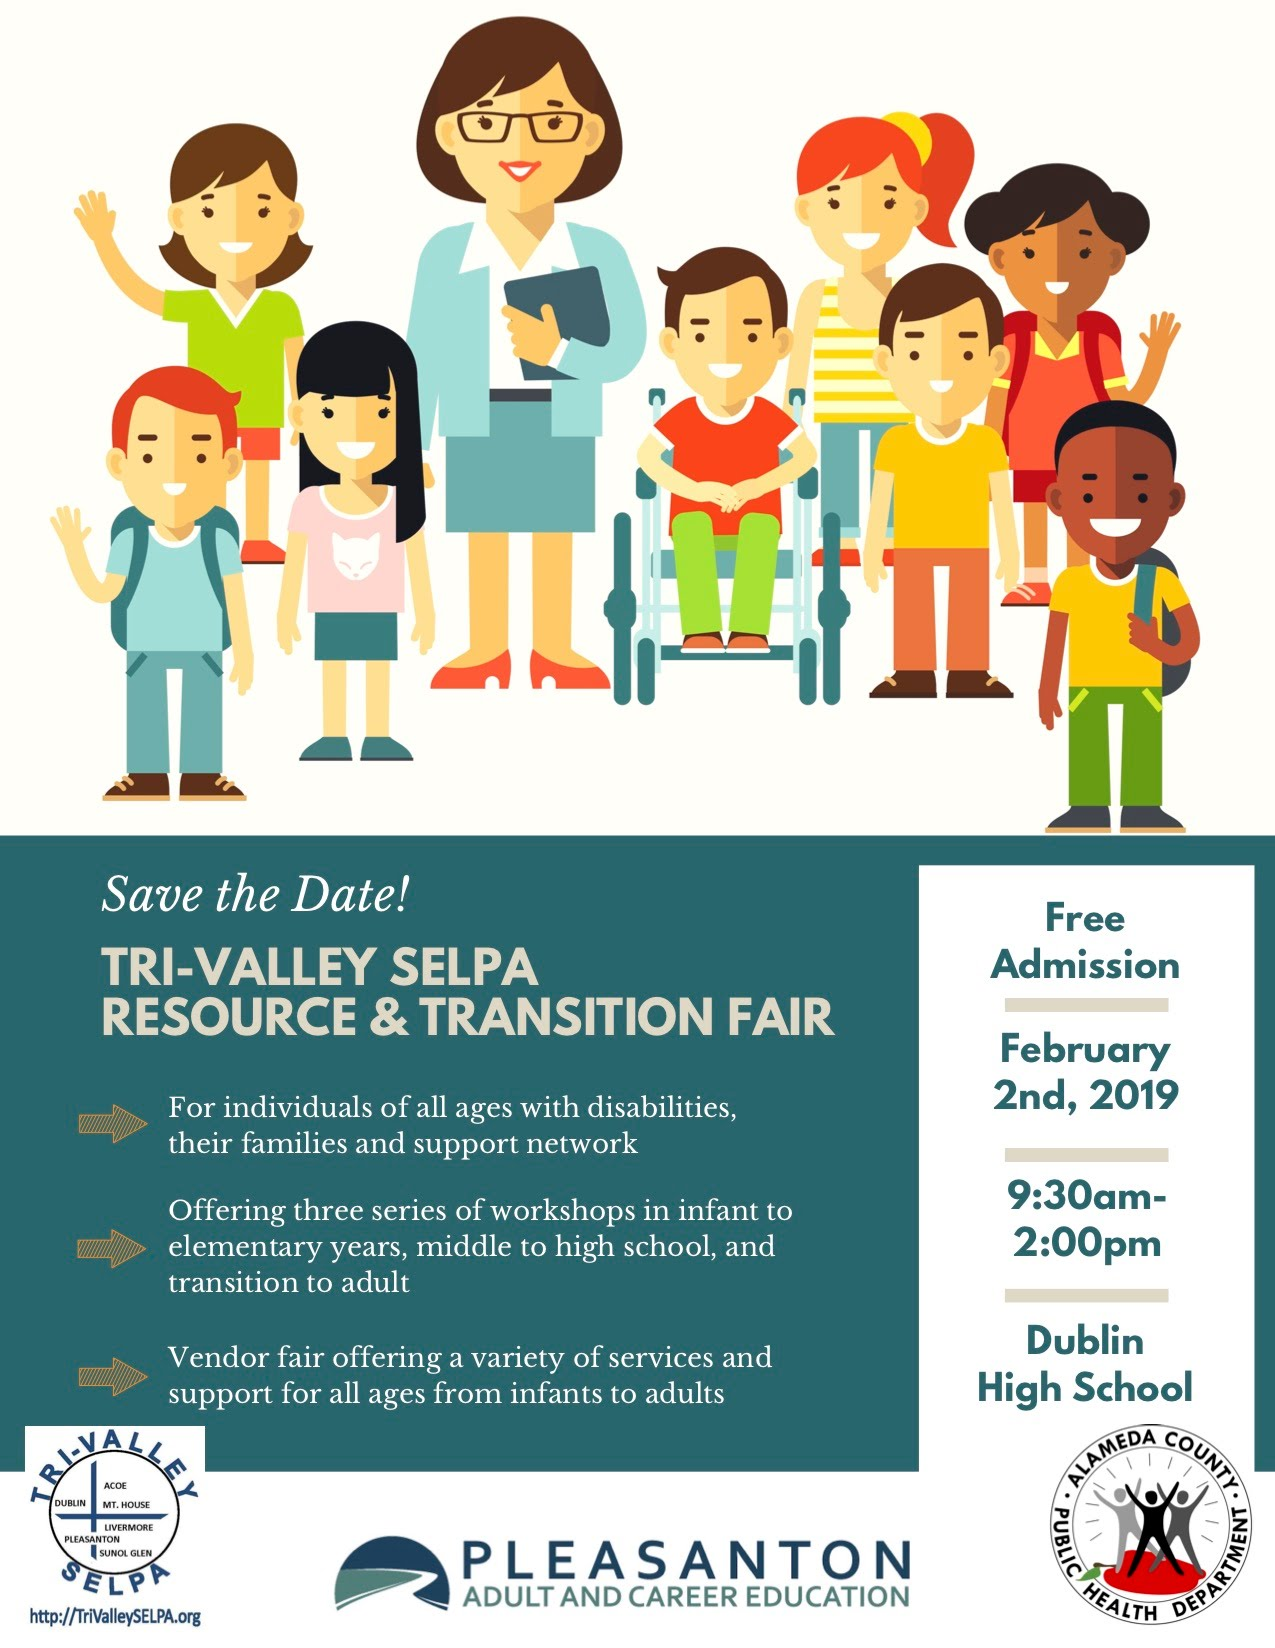 https://www.eventbrite.com/e/tri-valley-selpa-resource-and-transition-fair-tickets-53263147508